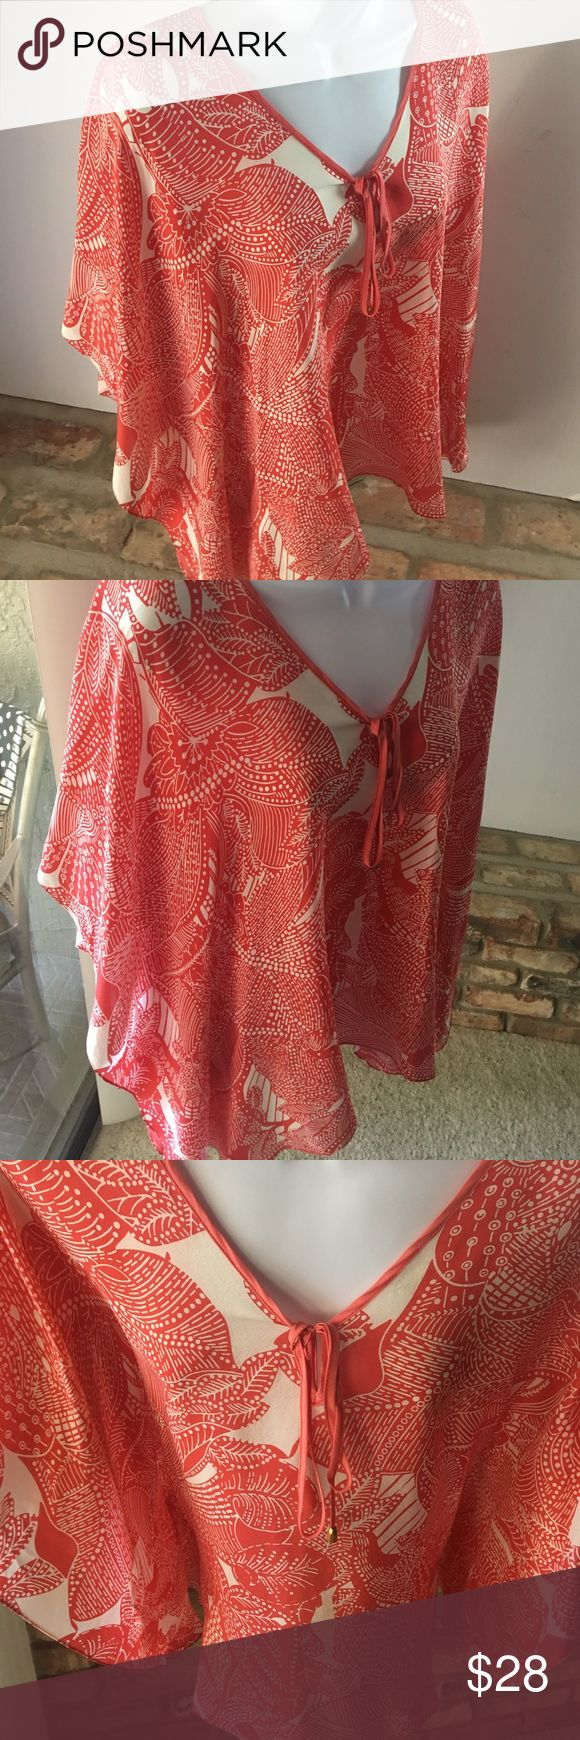 Beautiful Coral & White TALBOTS Flowing Blouse Really pretty coral & cream 100% silk print free flow blouse. Nice batwing style sleeve Talbots Tops Blouses